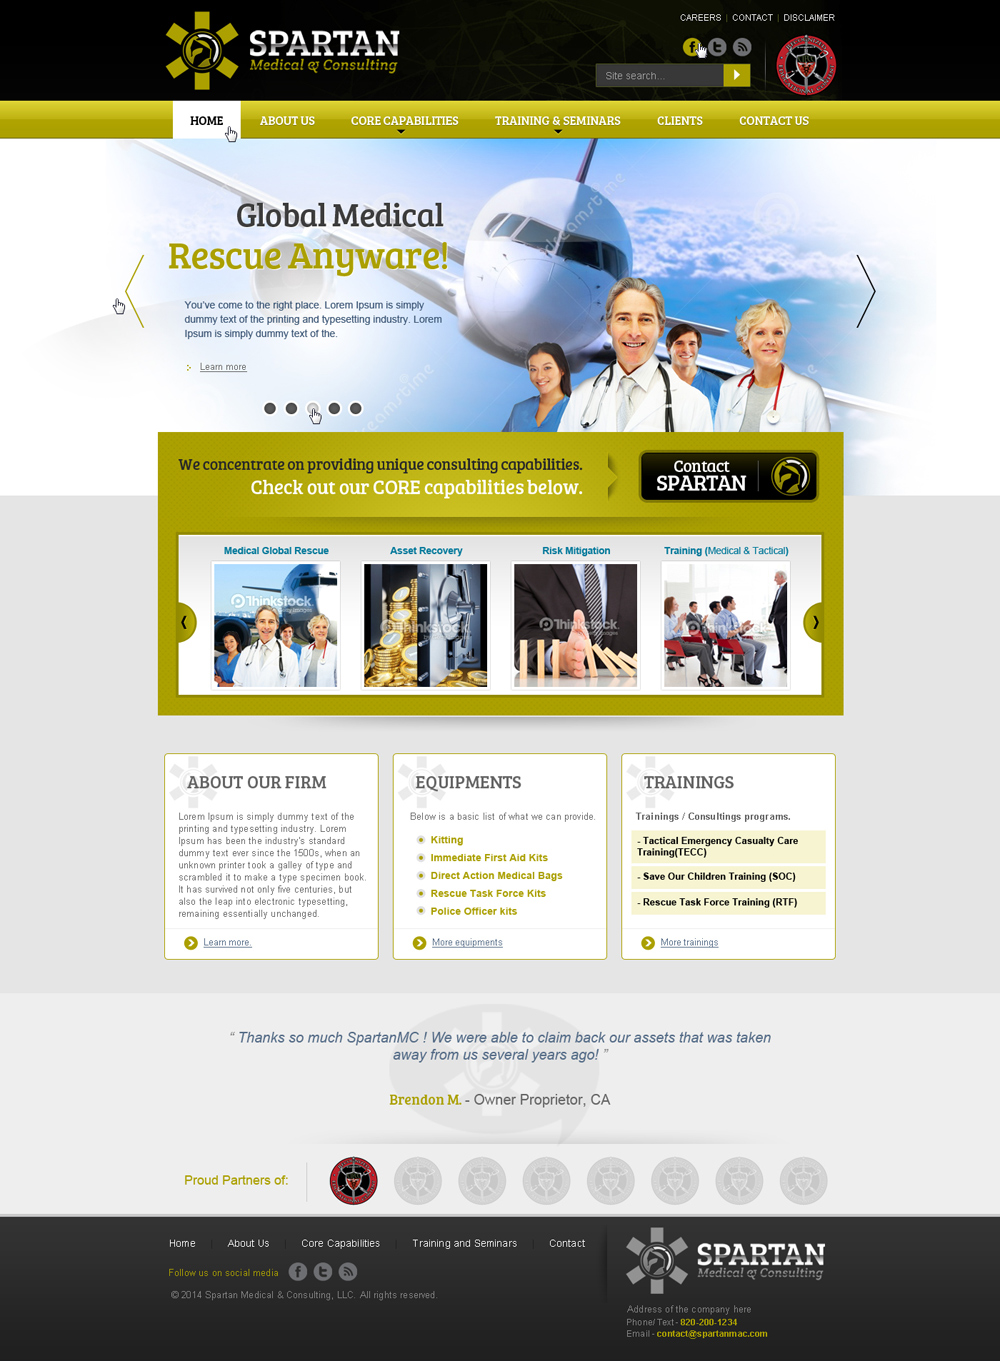 www.spartanmac.com, Spartan Medical and Consulting LLC webpage logo design